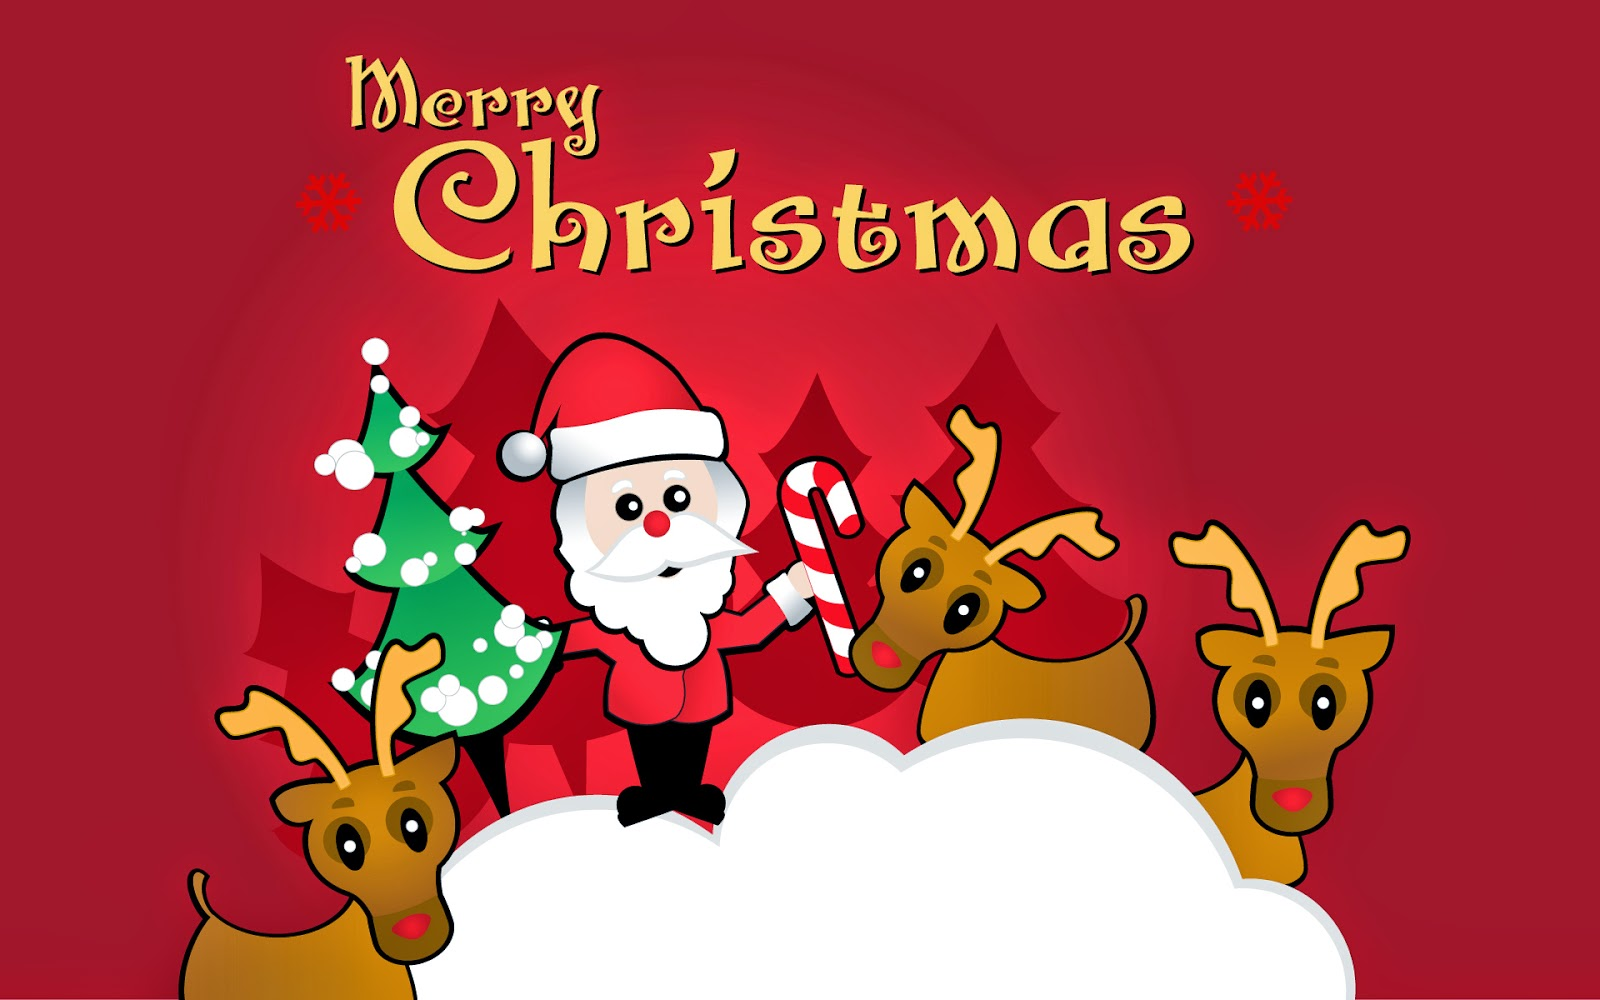 Merry-Christmas-text-santa-wallpaper-HD-free-download.jpg